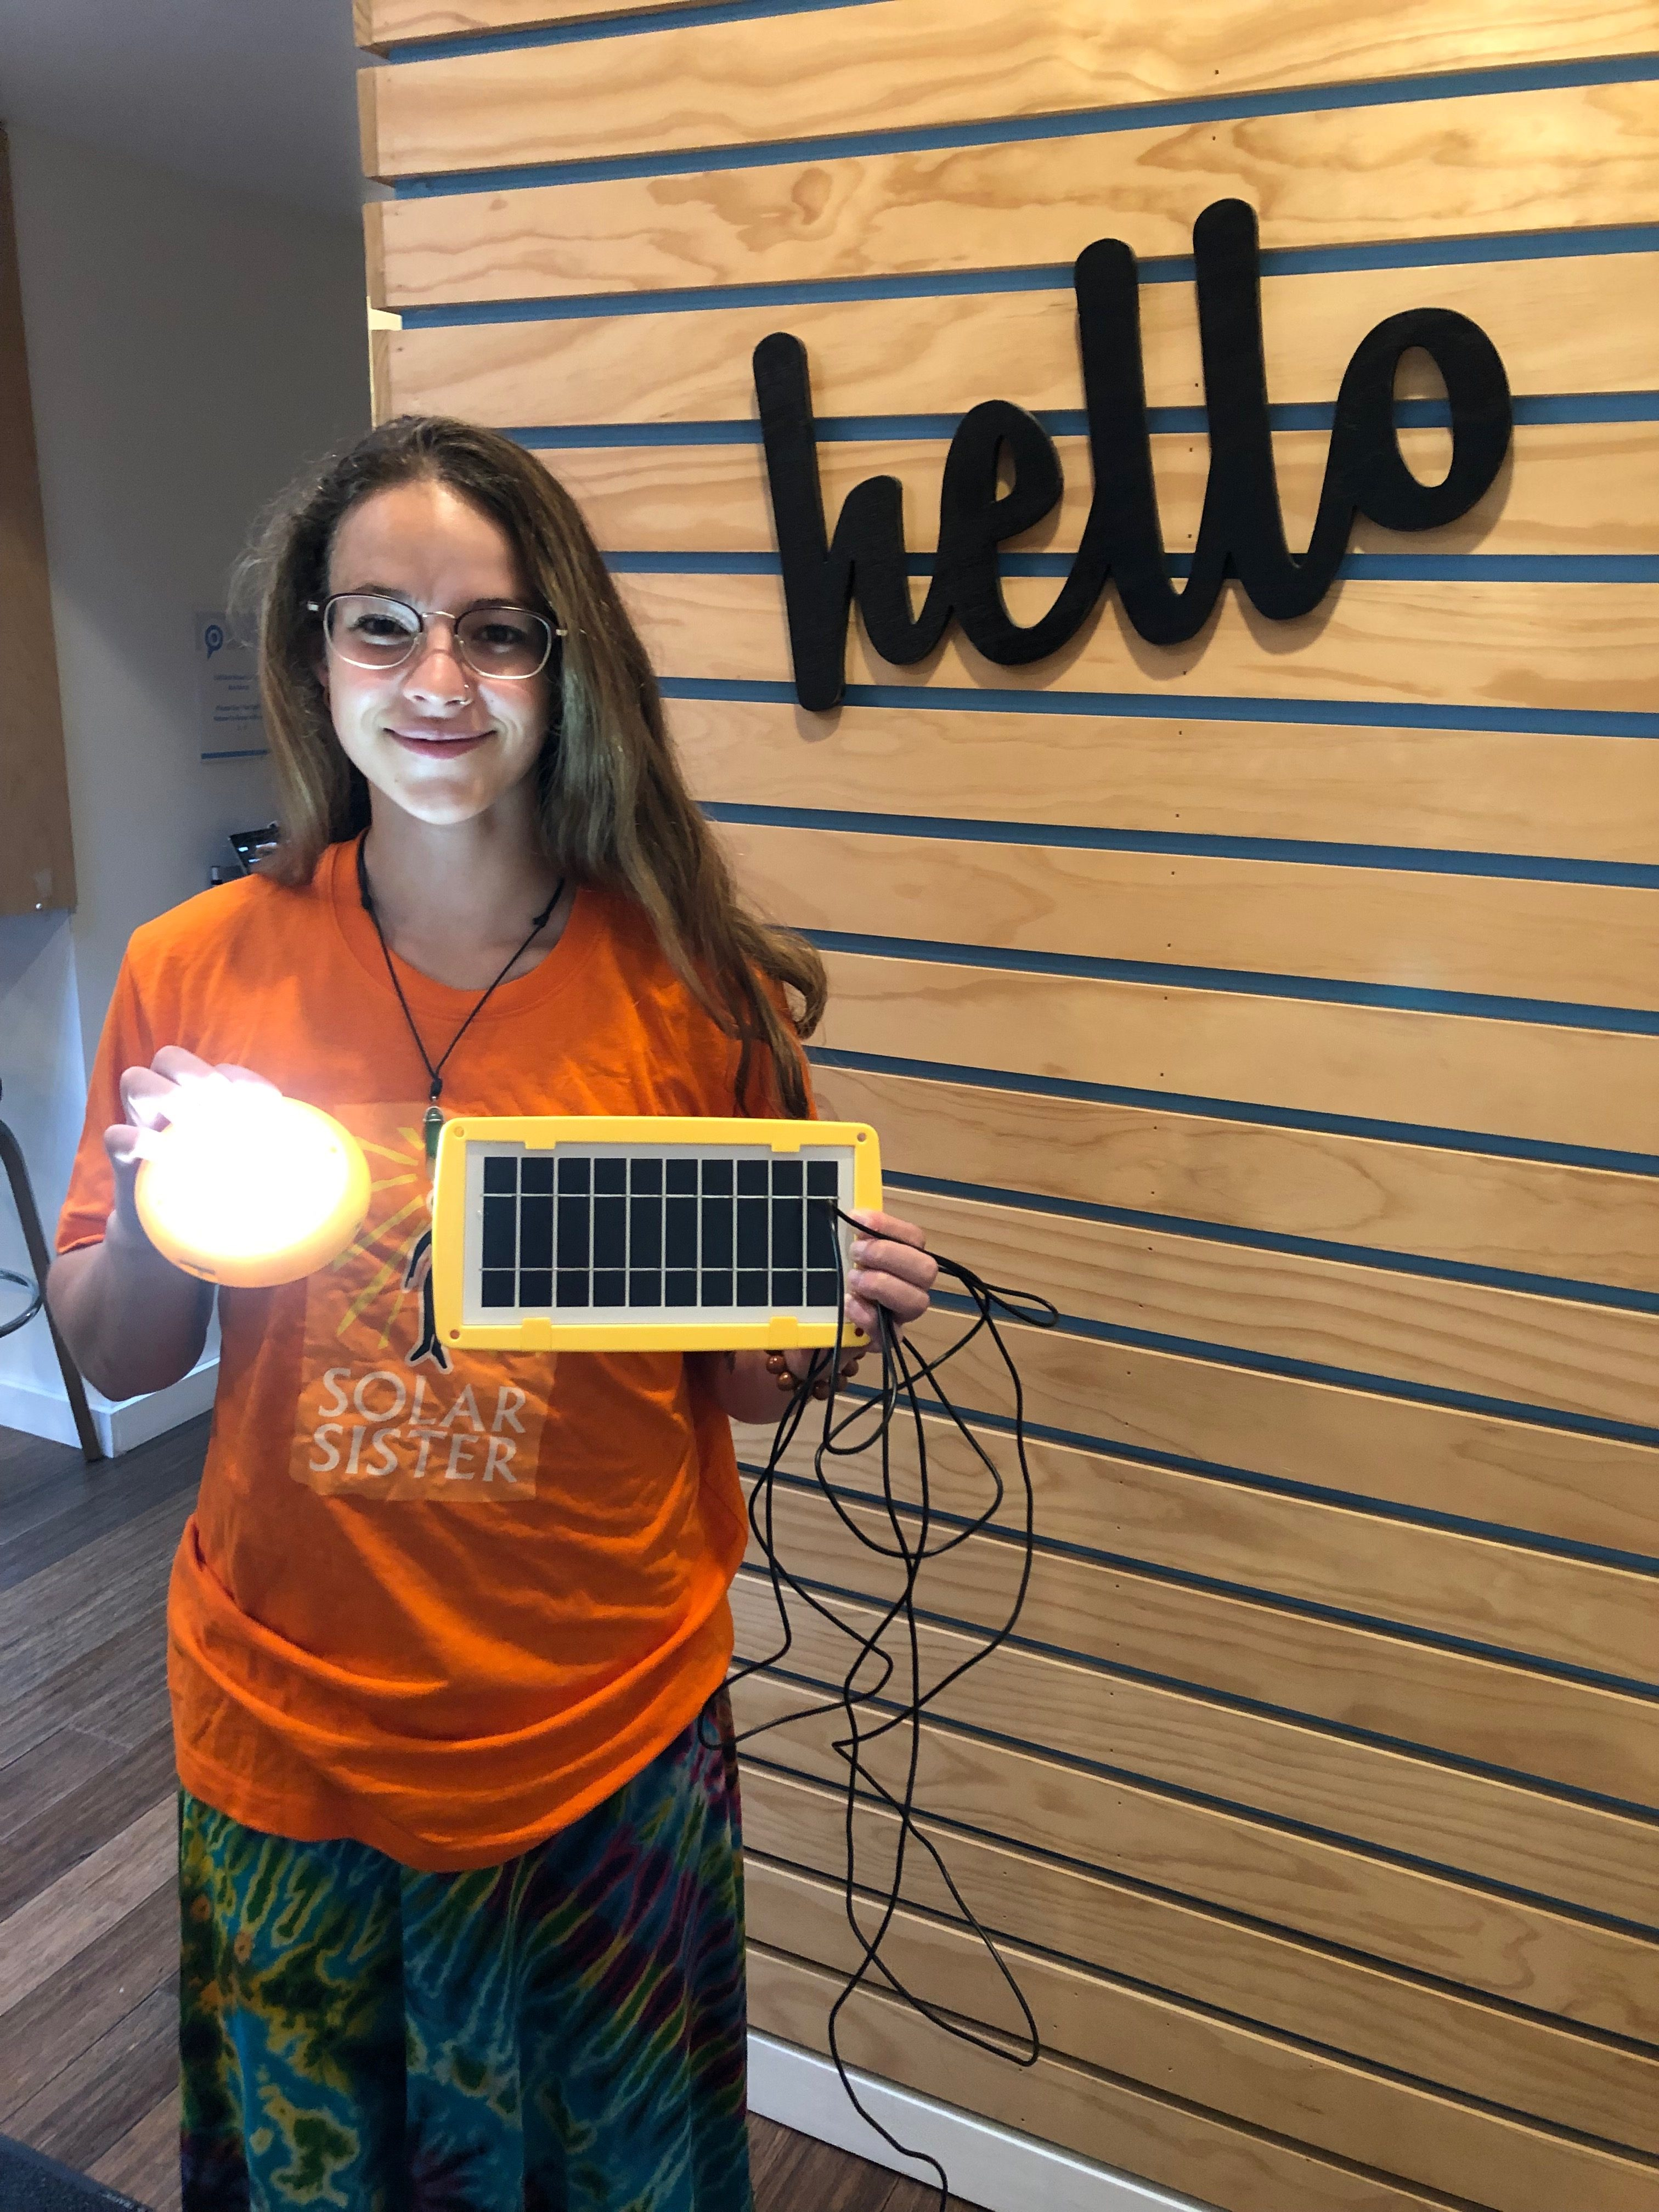 Alicia Oberholzer: Using Storytelling to Share Solar Sister's Impact